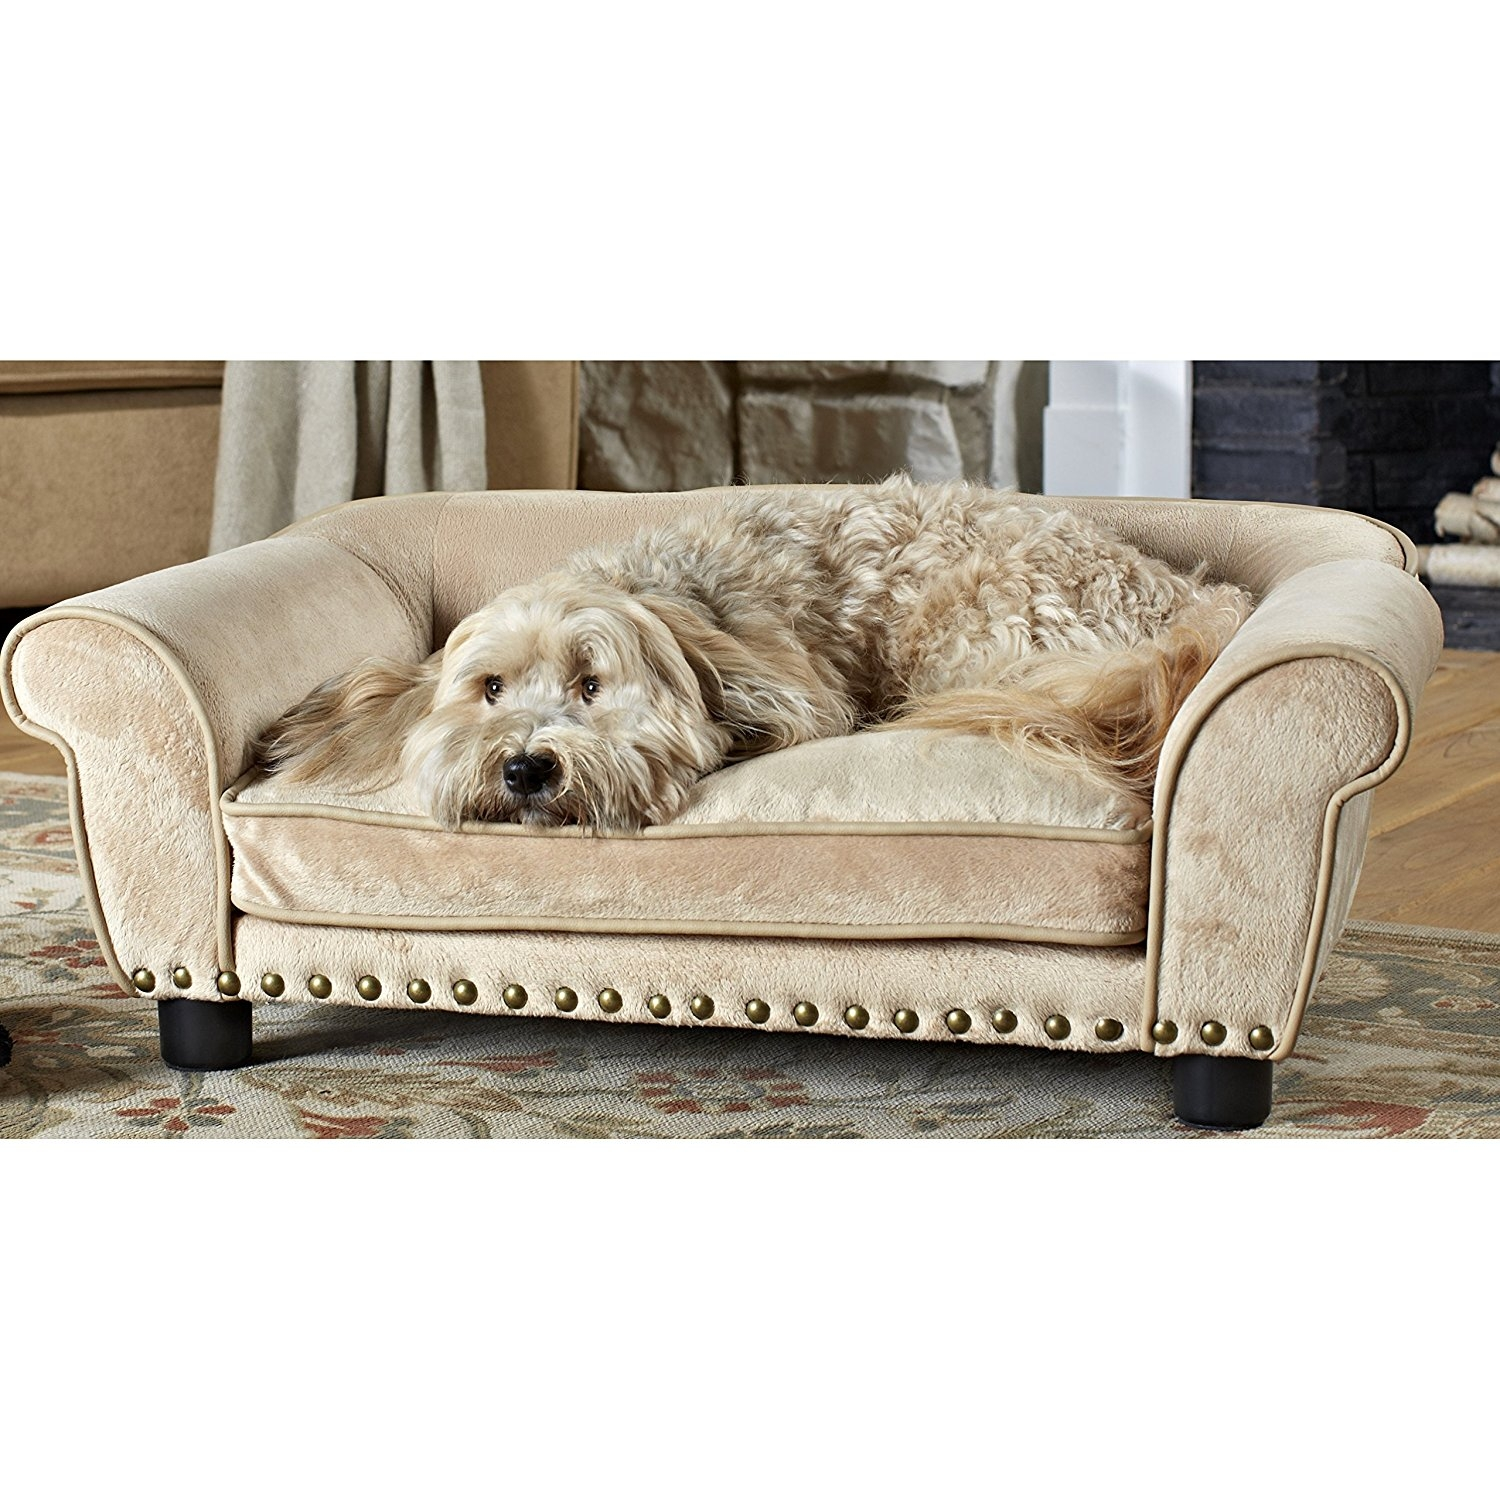 Sofas Center Aspen Pet Sofa For Dogs Cats Color Varies Chewy Com Intended For Sofas For Dogs (Image 10 of 15)